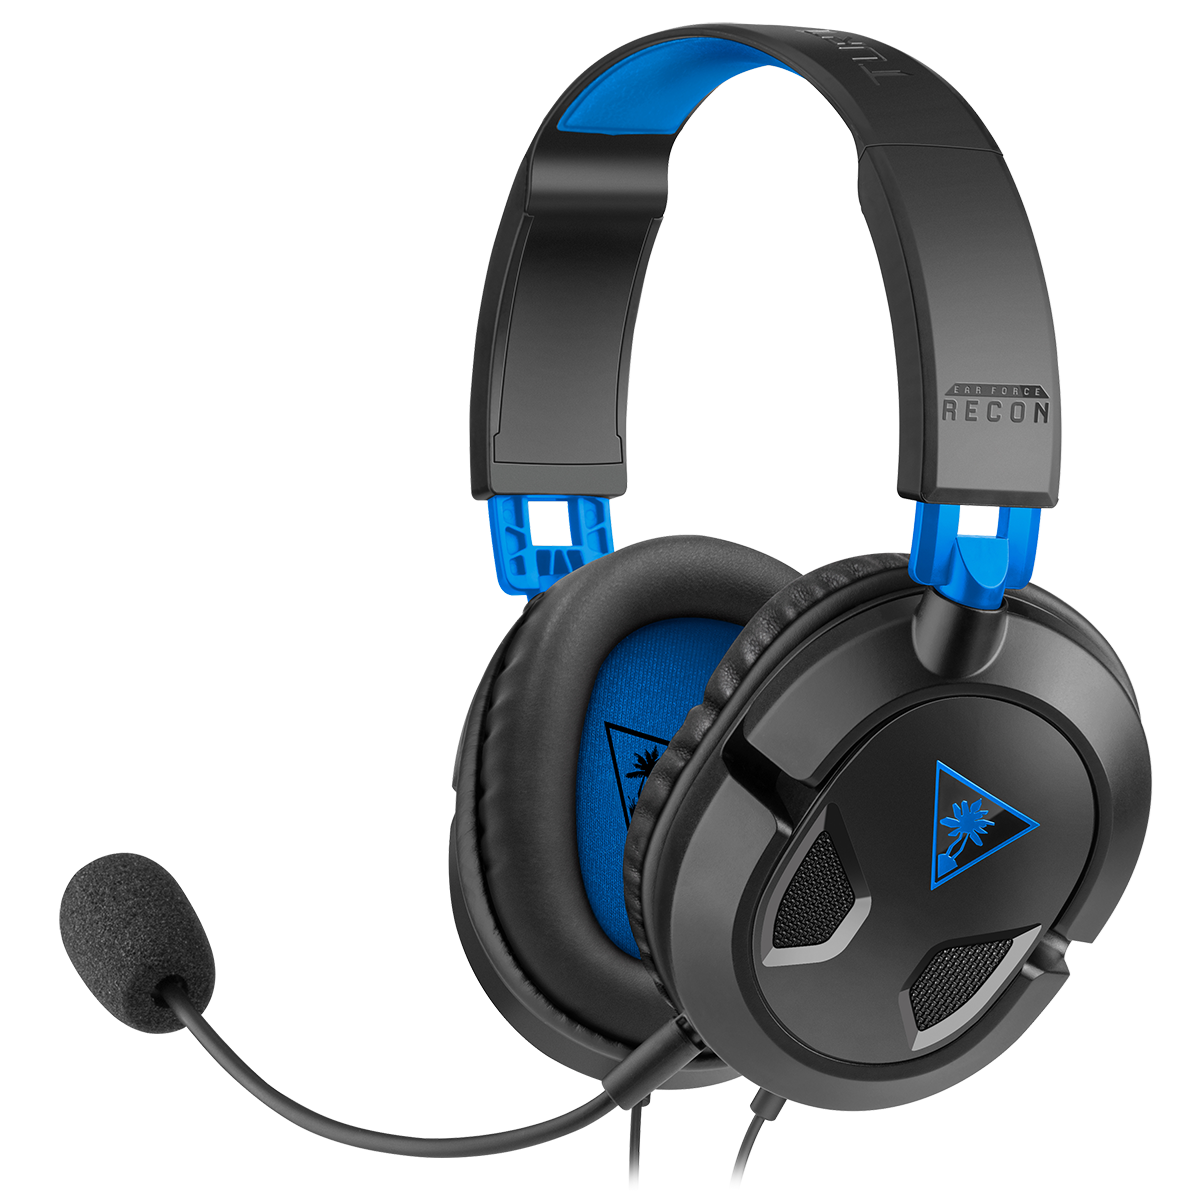 Recon 50P Gaming Headset for PS4 and Xbox One